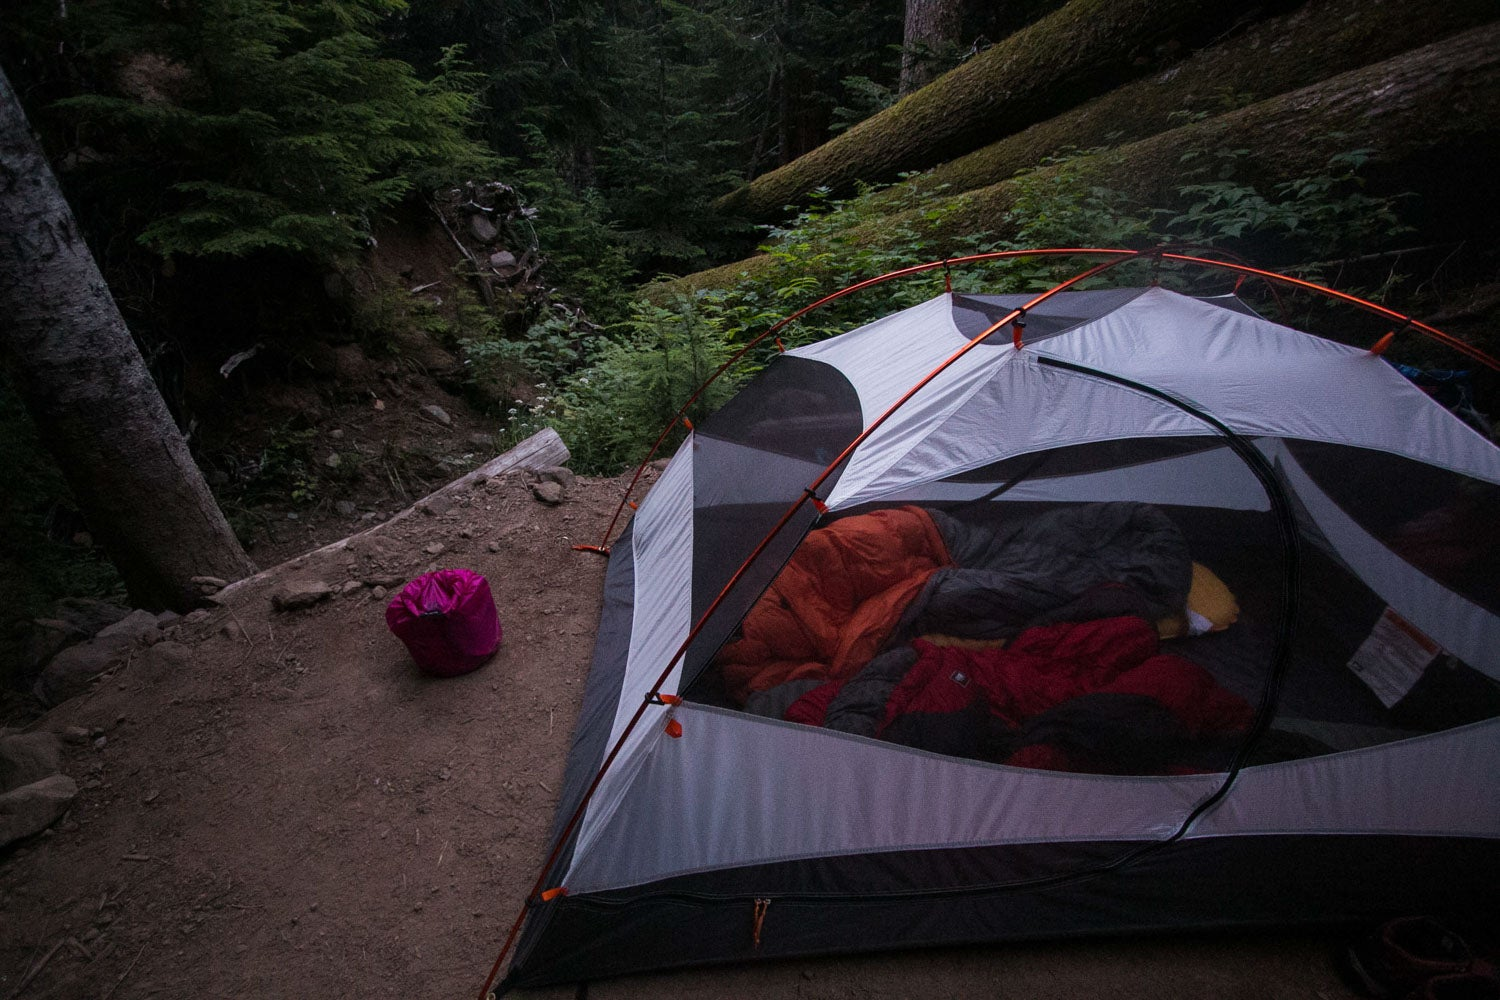 Carbon River Campground - Hiking the Wonderland Trail, Mount Rainier National Park